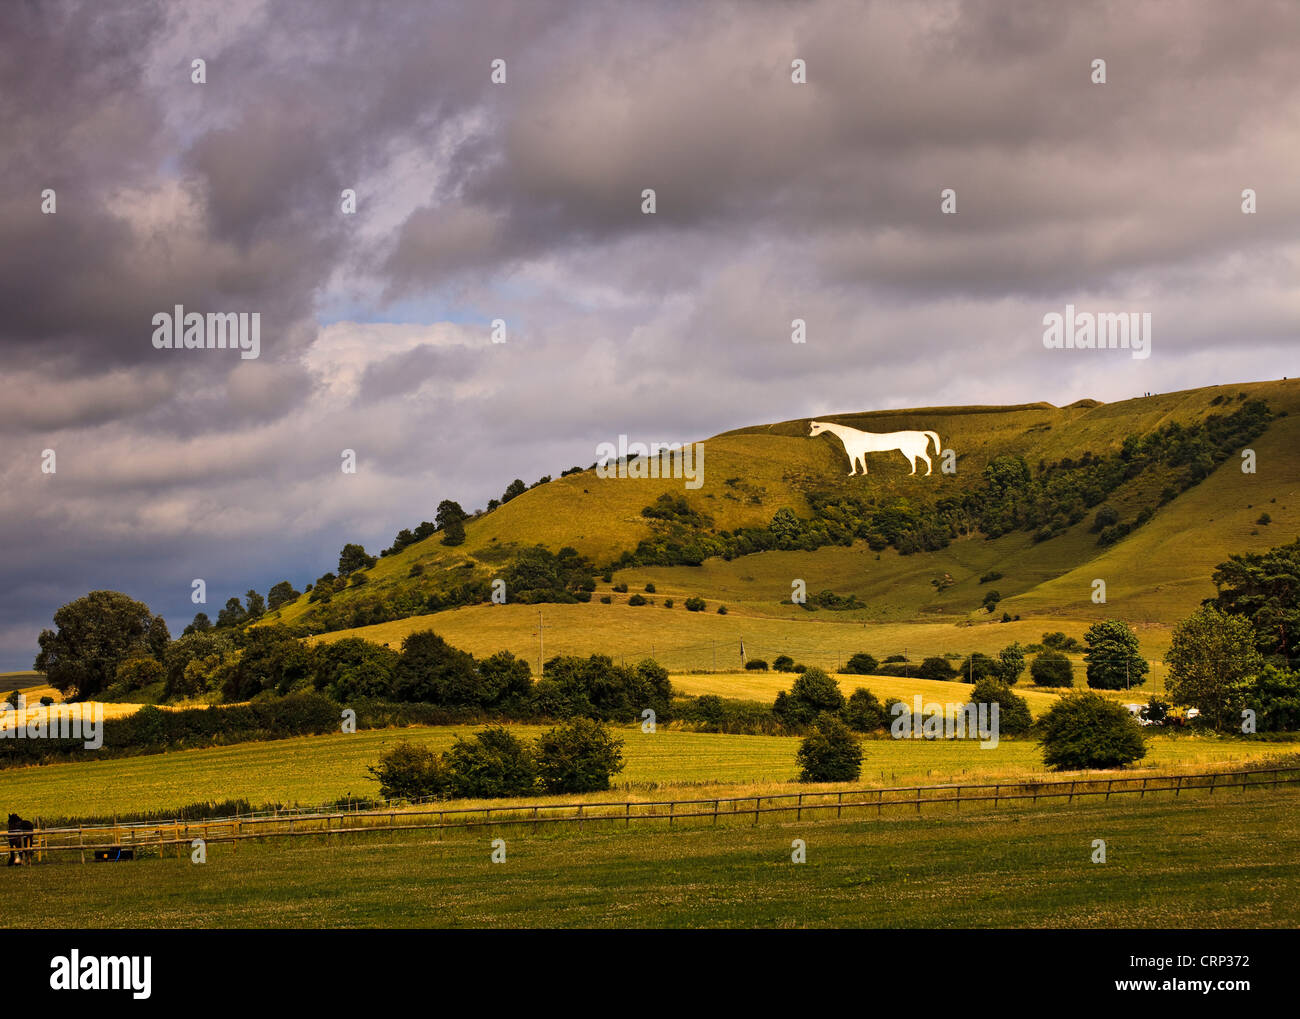 Stormy sky over the Westbury white horse, the oldest of Wiltshire's white horses, on the edge of the Bratton Downs. Stock Photo